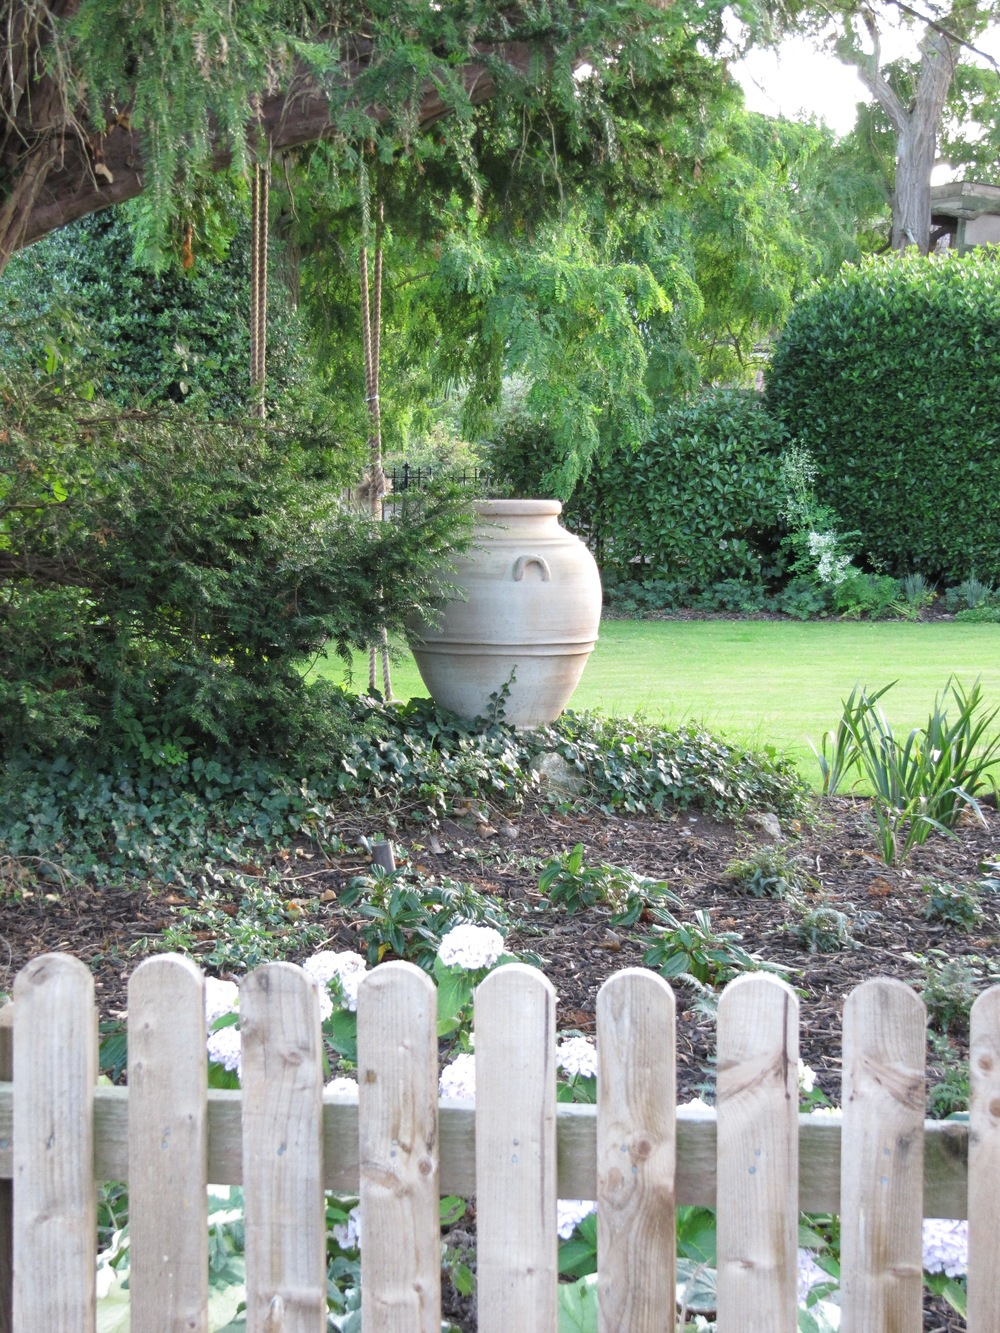 A simple terracotta urn perfectly placed in the ivy beneath an old yew tree, Taxus baccata.